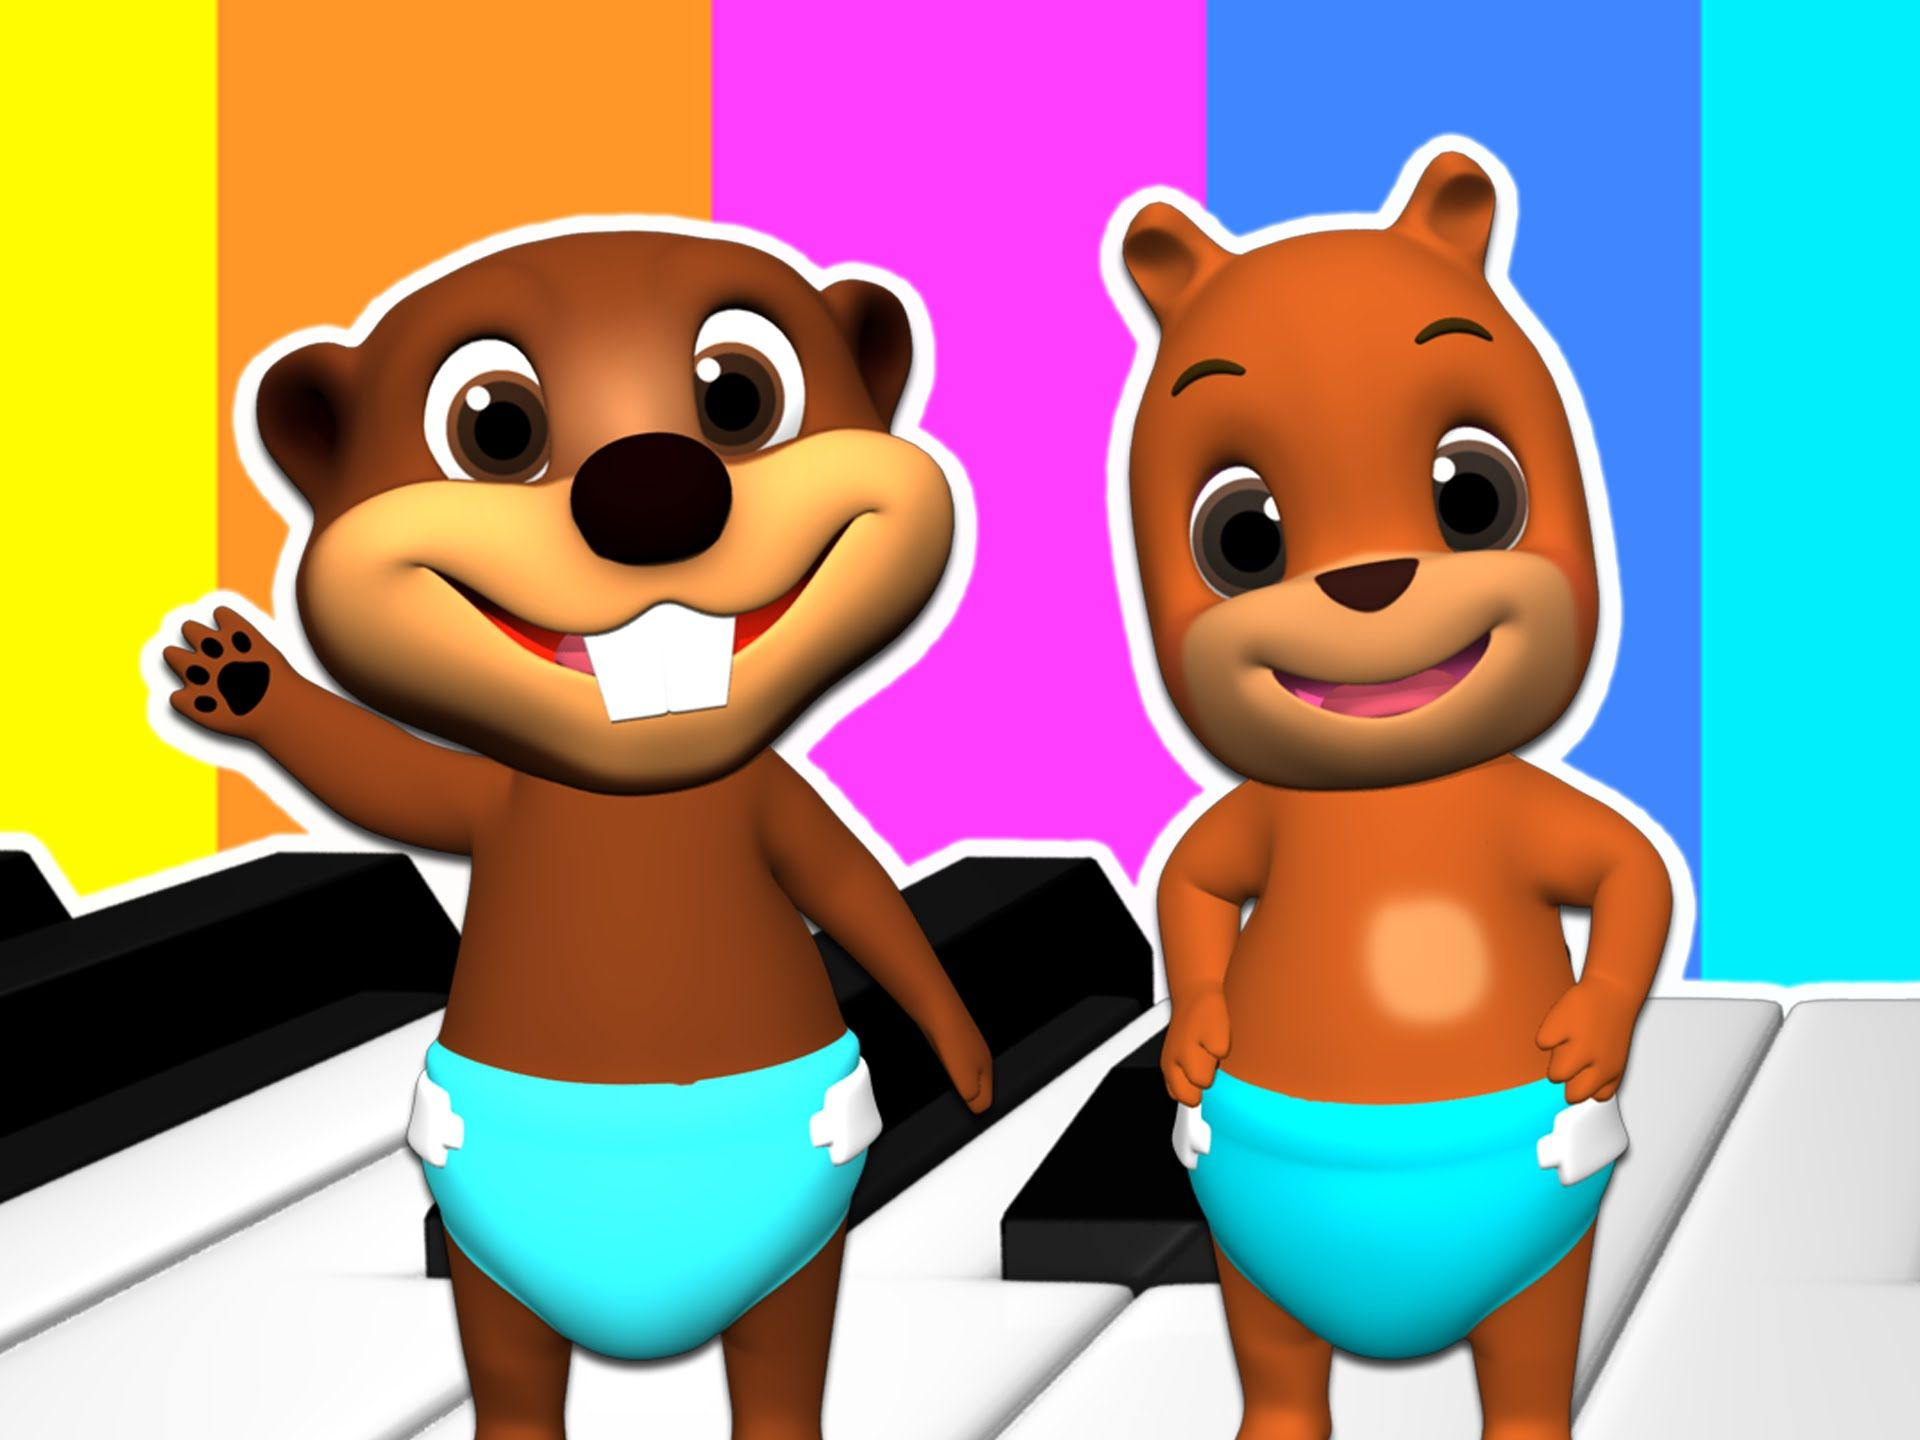 Play The Alphabet On The Piano Teaching The Abcs To Kids Alphabet Learning Song Kindergarten Baby Beaver Learning The Alphabet Piano Teaching